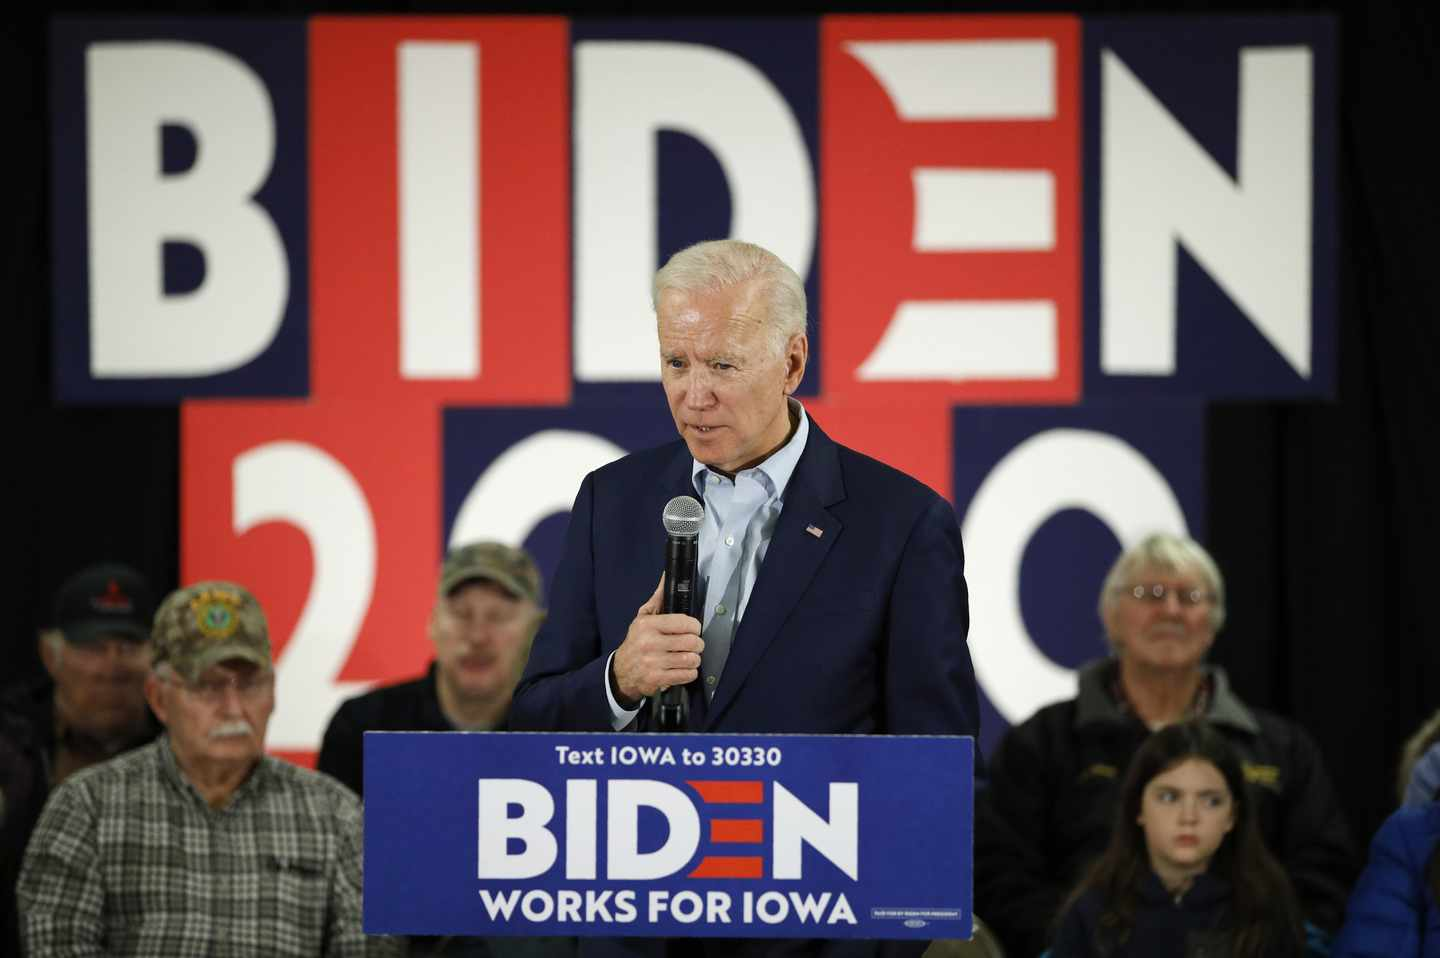 We Need to Know Bidens Foreign Policy Plans